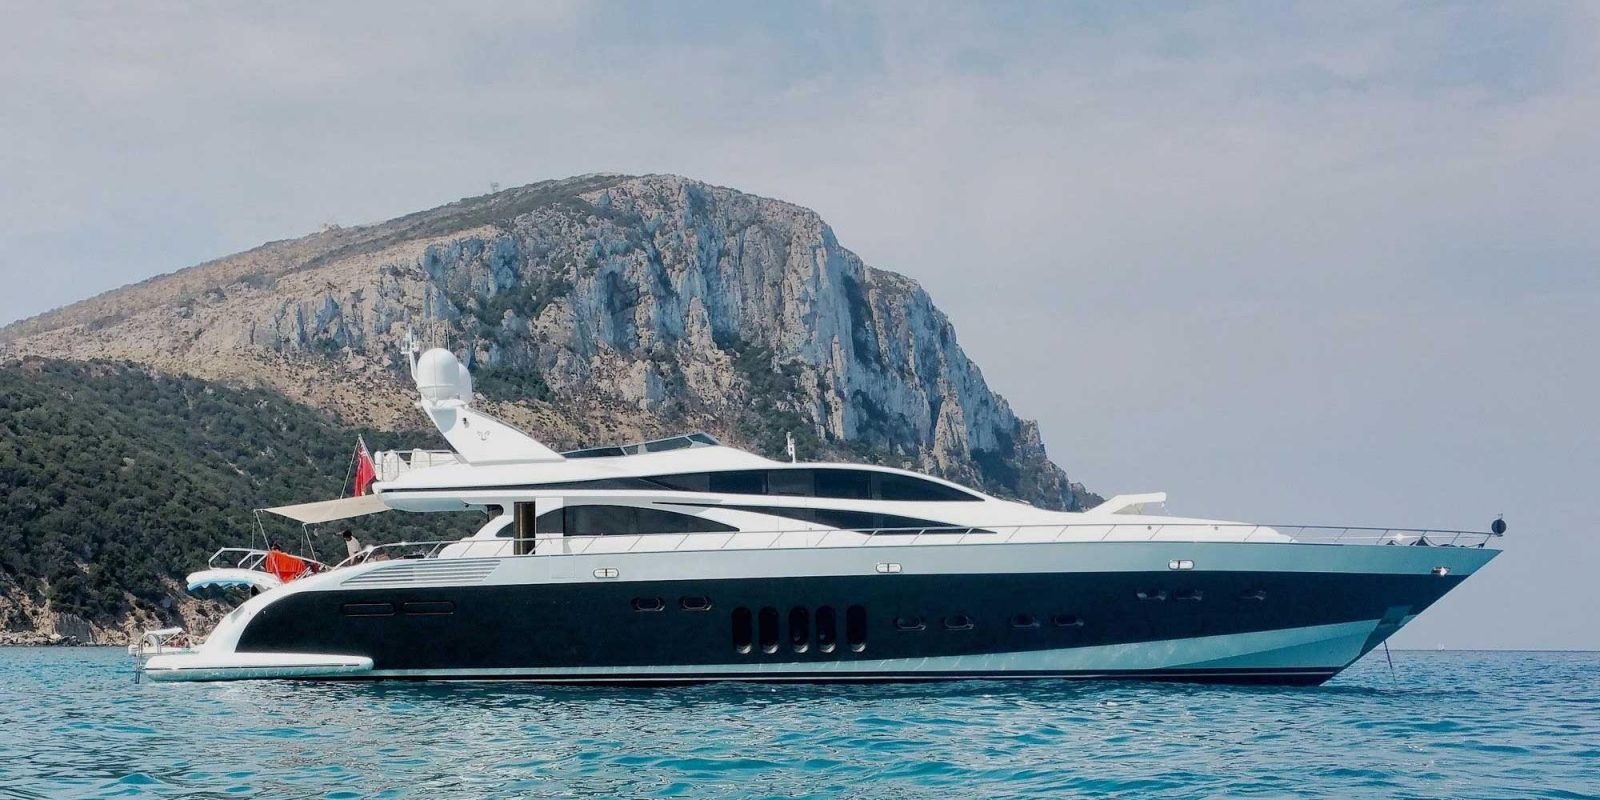 Luxury yacht for Sale | LIS by Leopard - Italyachts